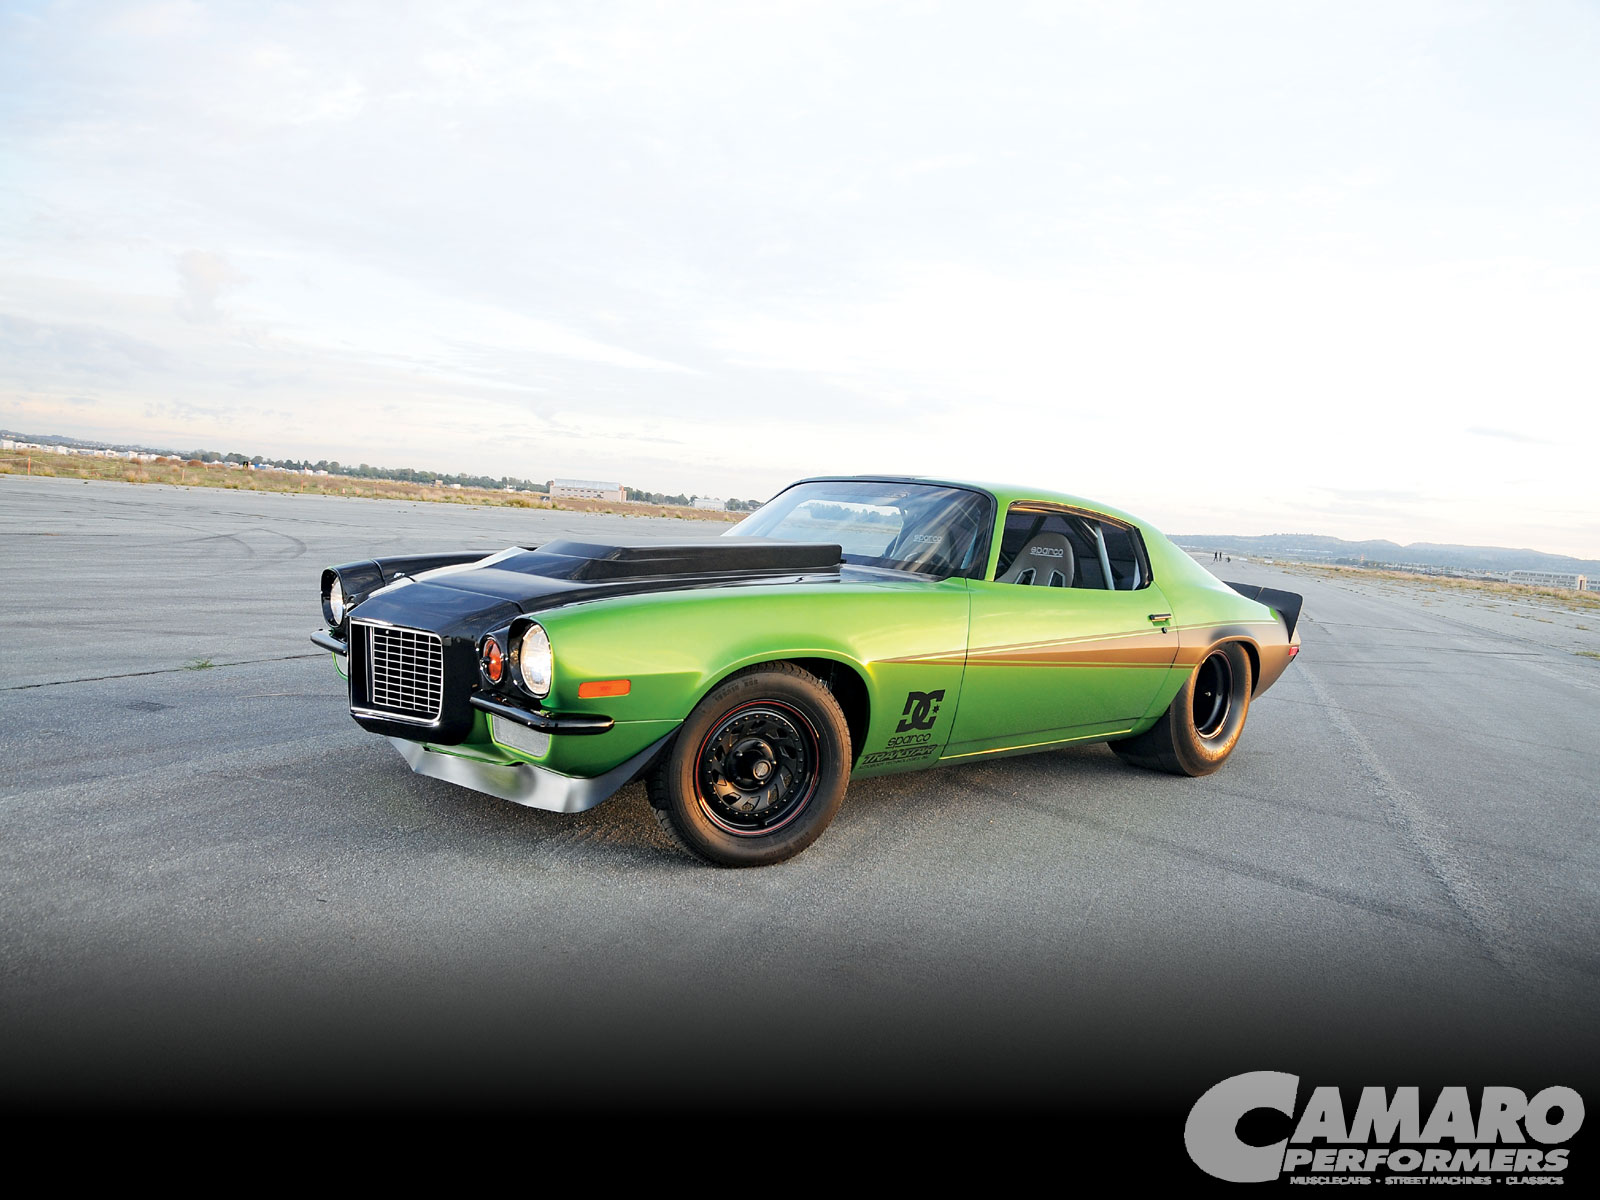 Camp_1005_01_o 1971_chevrolet_camaro